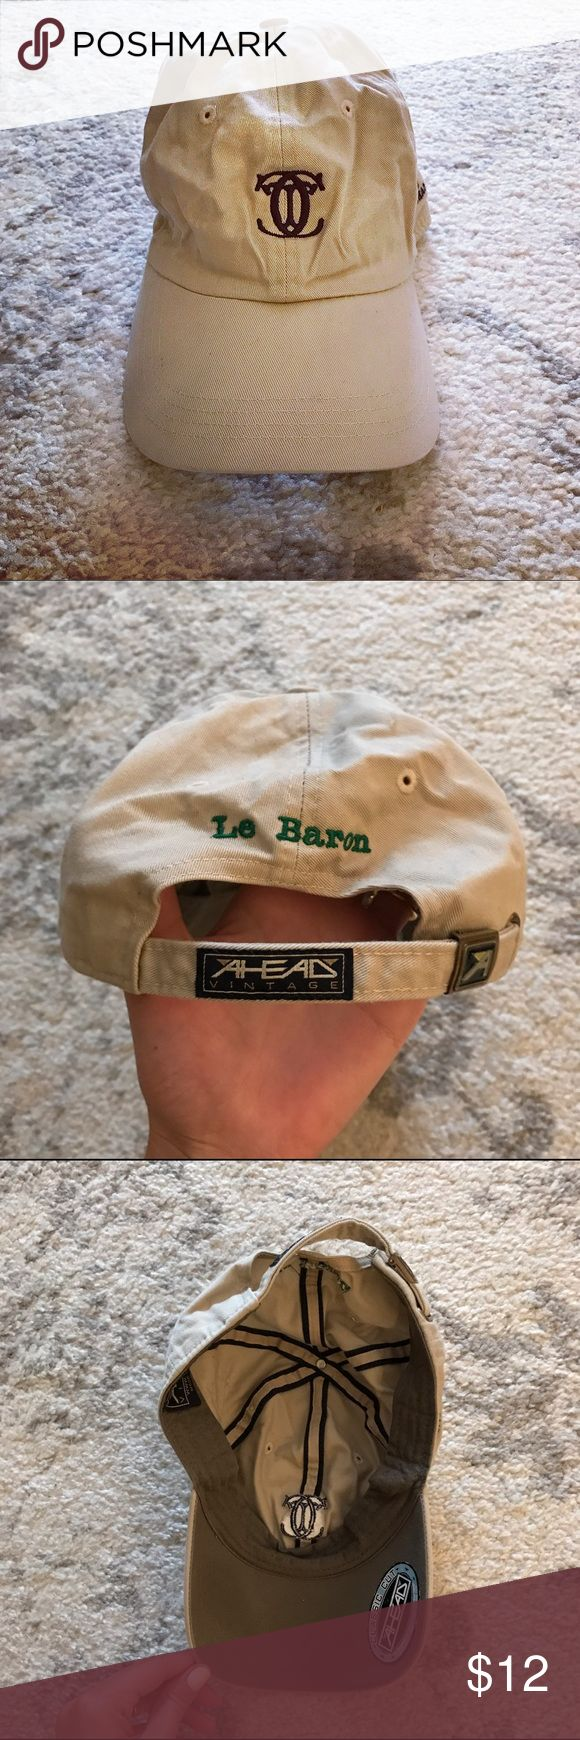 """Le Baron Country Club khaki golf hat Le Baron Country Club khaki cotton golf cap. The hat has the Le Baron Country Club logo sewn in black on the front of the cap, and """"Le Baron"""" sewn in green on the back of the cap. The hat has an adjustable strap in the back, and is meant to be one size fits all. On one side of the hat, """"2012 B-League Champions"""" is sewn small in black, and on the other side of the hat are other championship years sewn in black (2007, 2004, 2003, etc). In excellent…"""